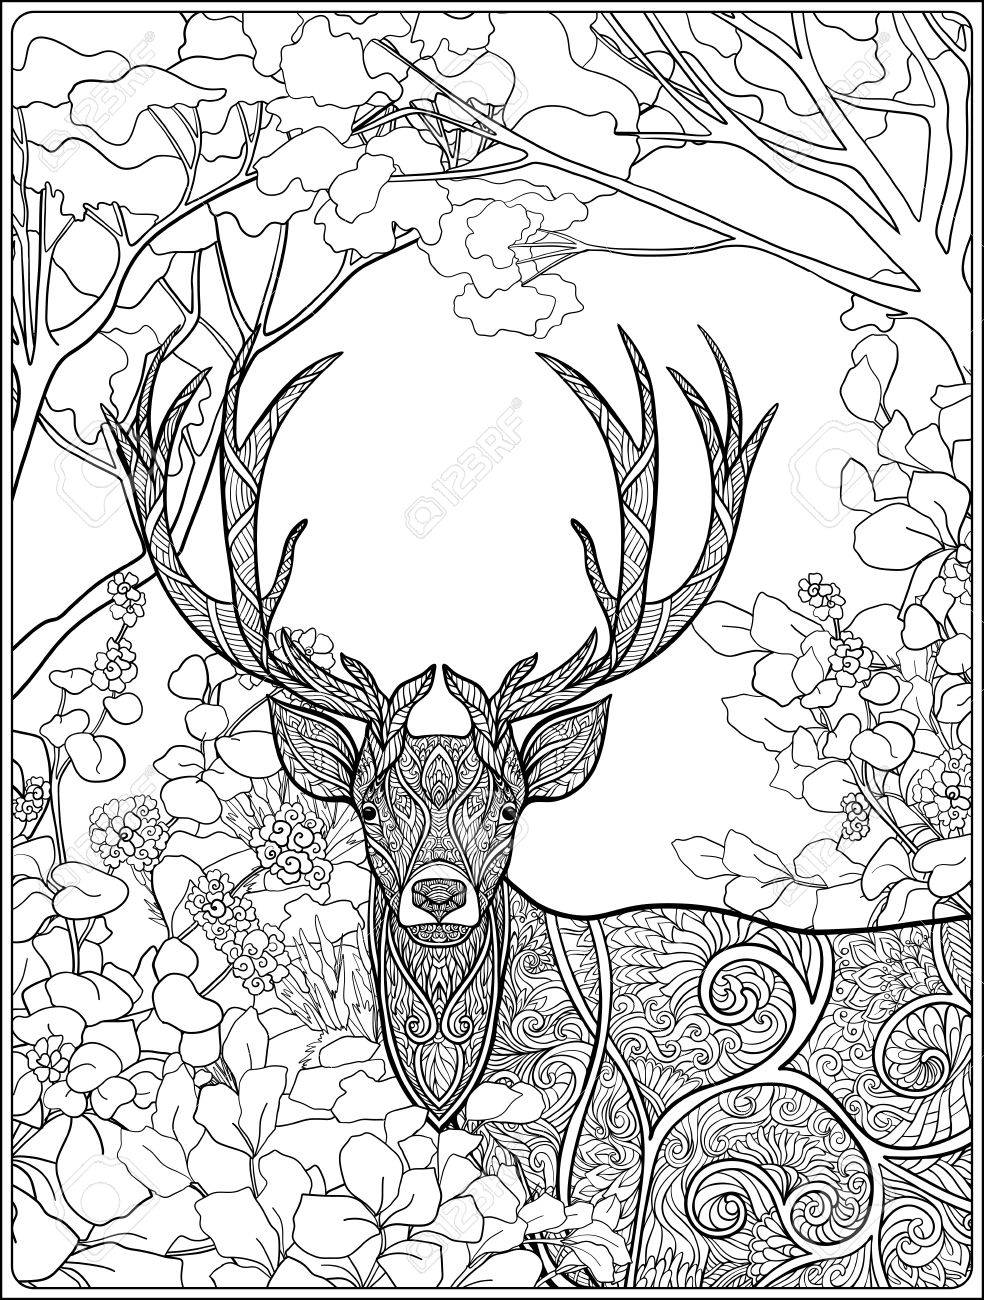 Coloring Page With Deer In Forest. Coloring Book For Adult And Older ...